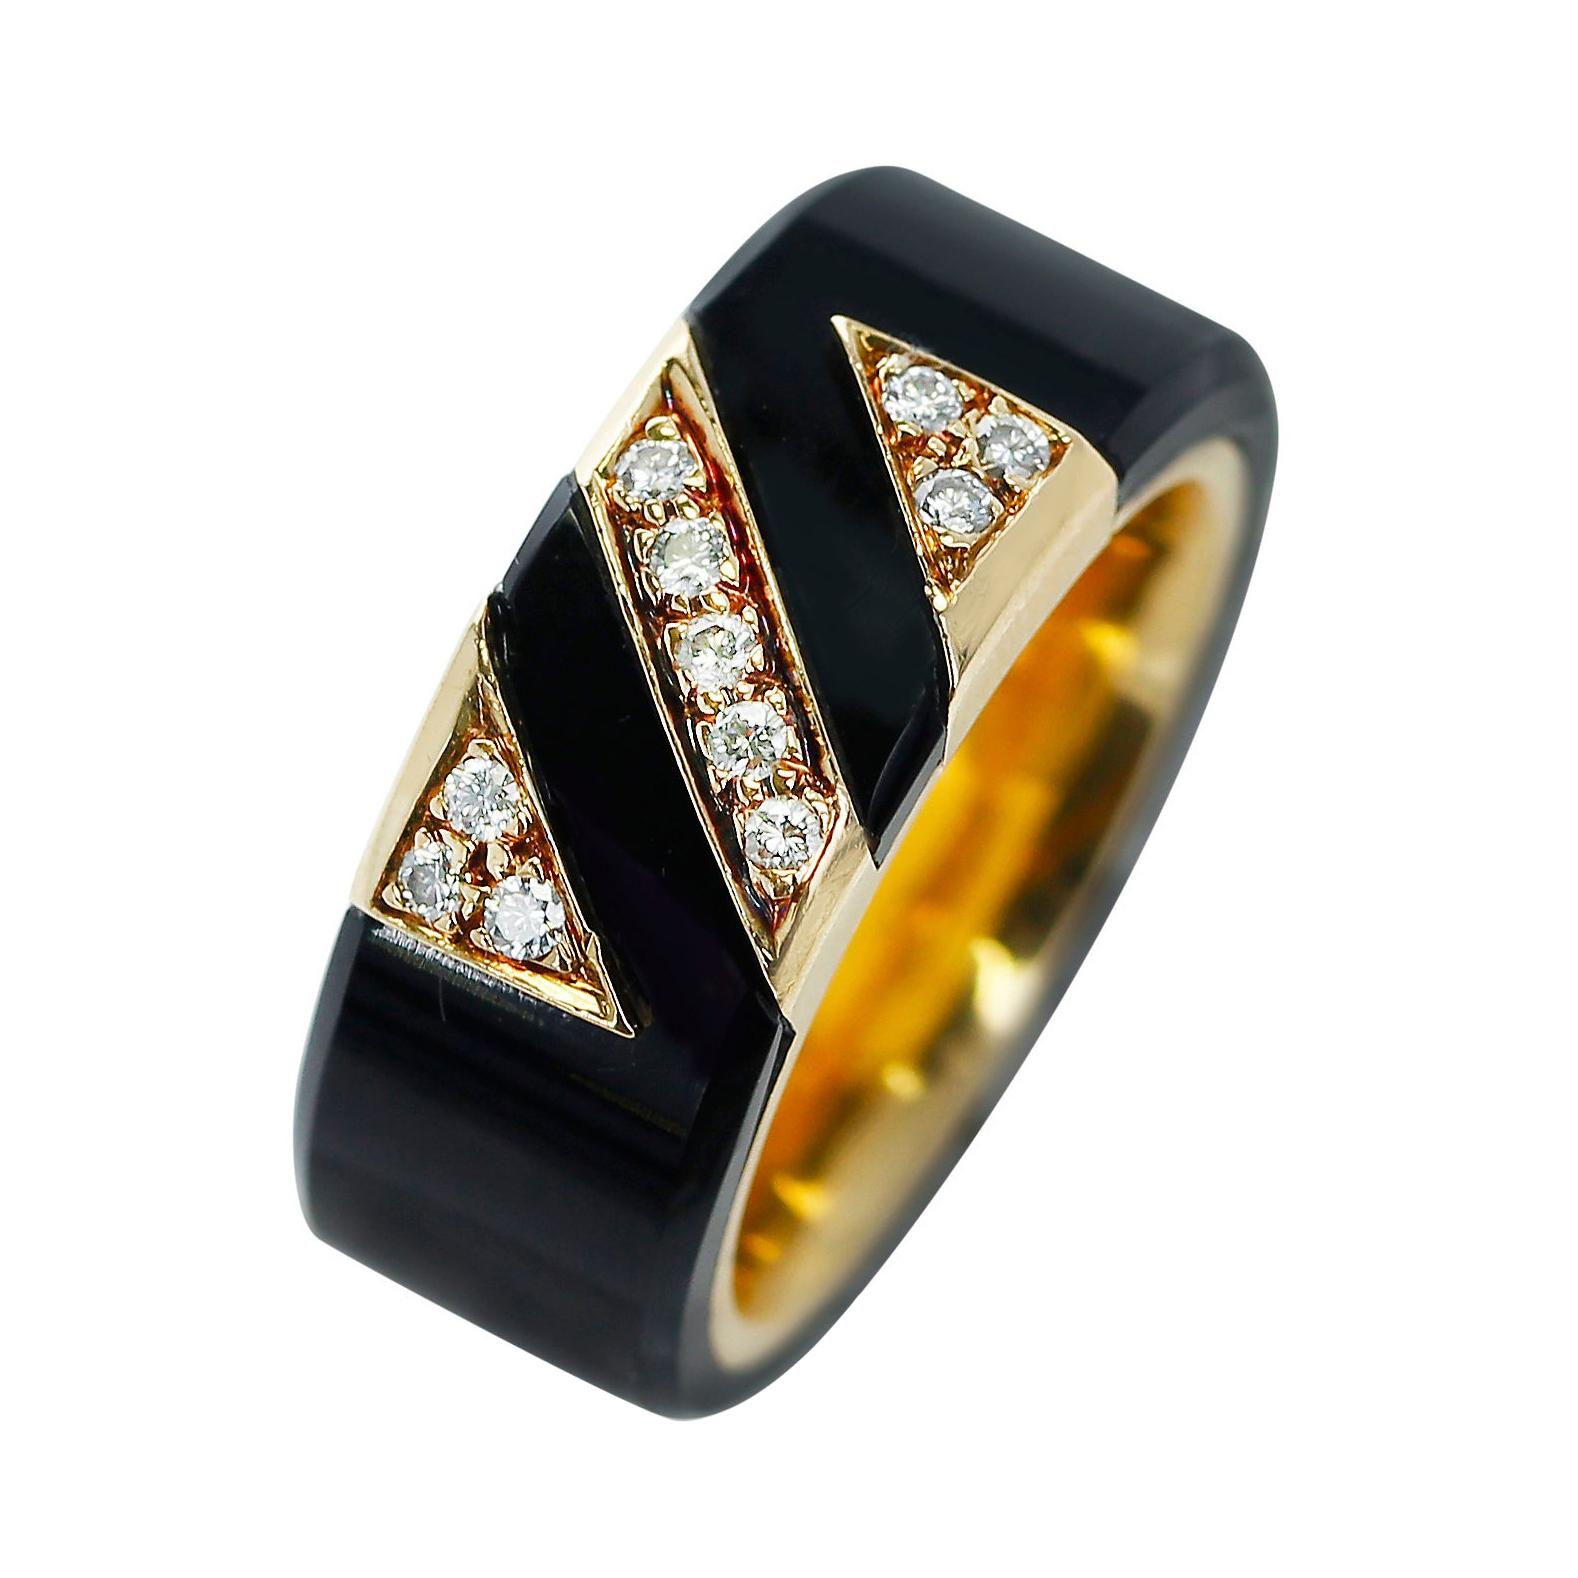 Van Cleef & Arpels Onyx and Diamond Band Ring, 18k Yellow Gold